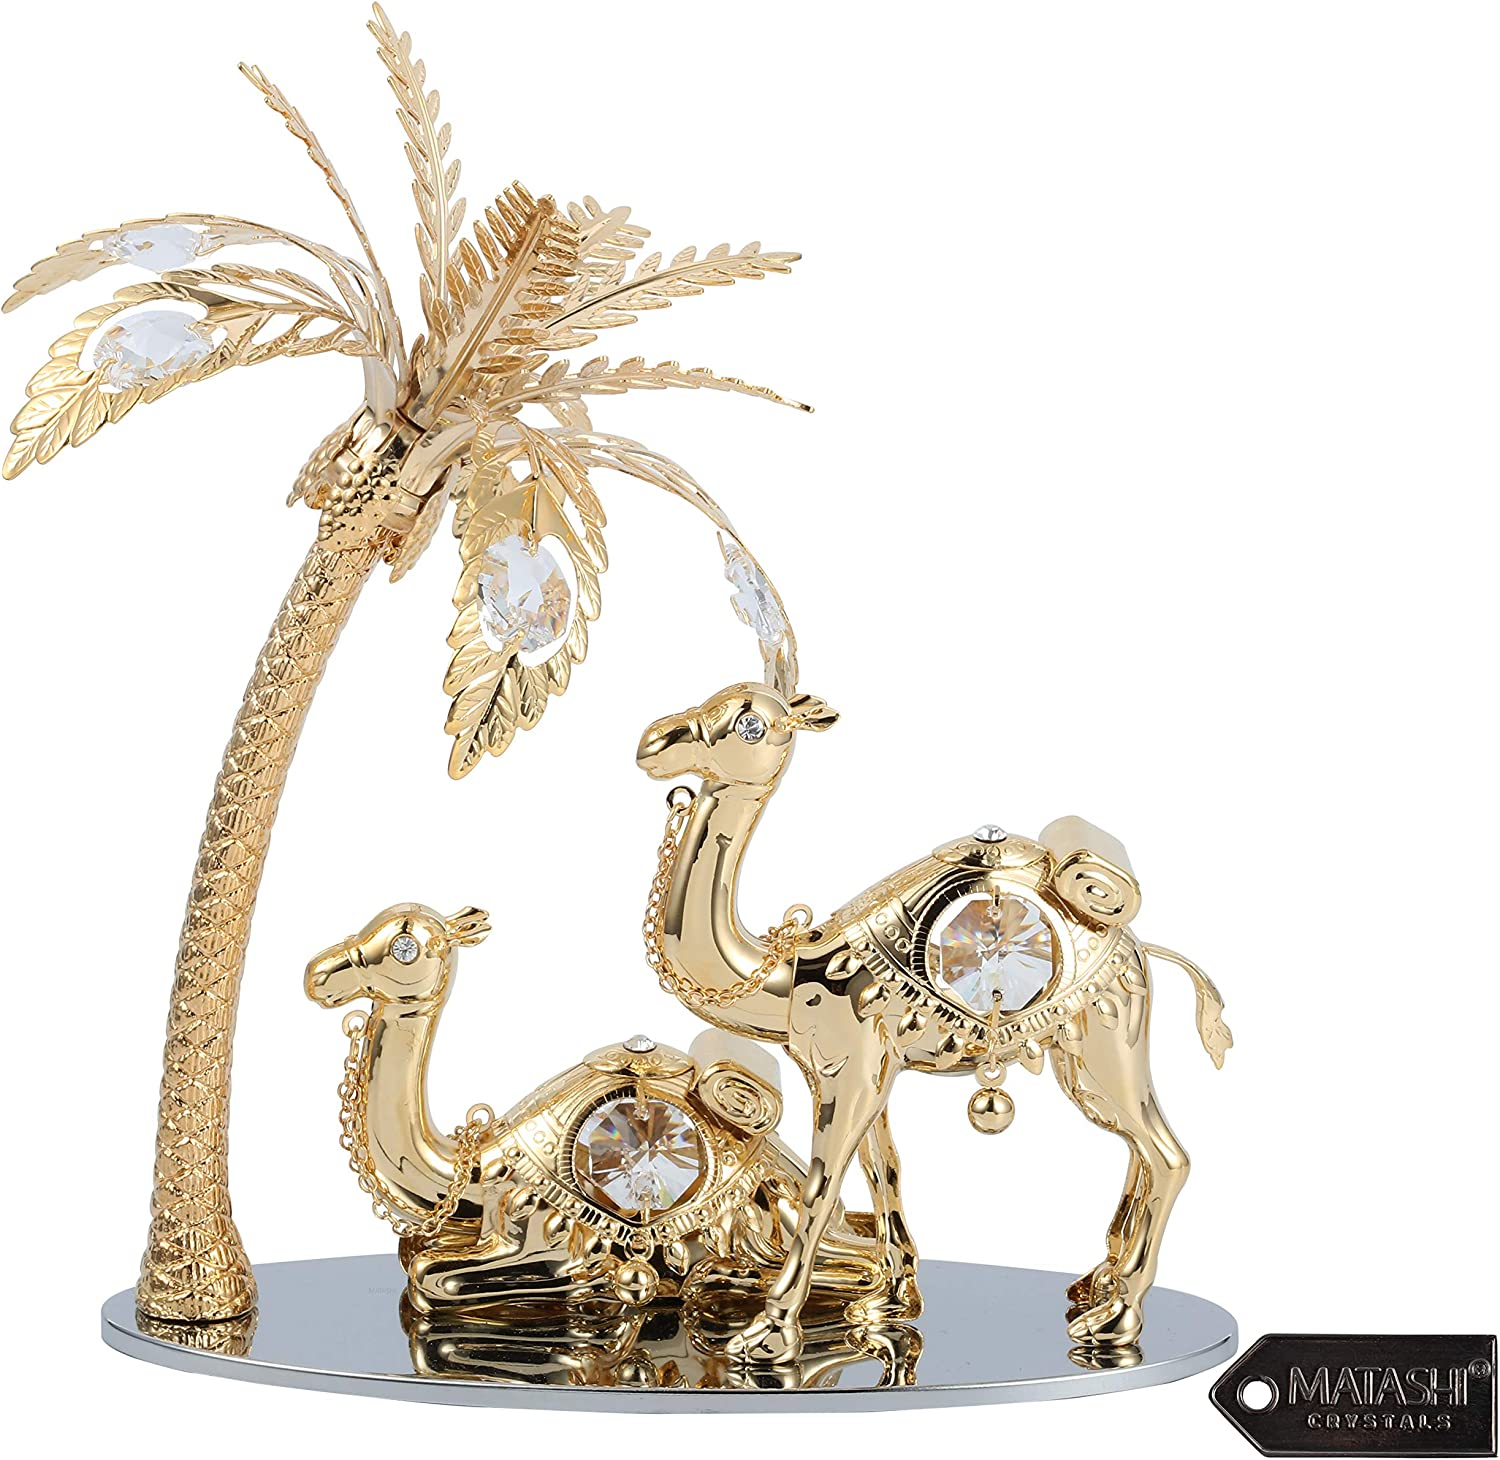 Matashi 24K Gold Plated Crystal Studded Camels and Palm Tree Tabletop Ornament Home Decorative Showpiece for Living Room Bedroom Gift for Christmas Mother's Day Valntine's Day Birthday